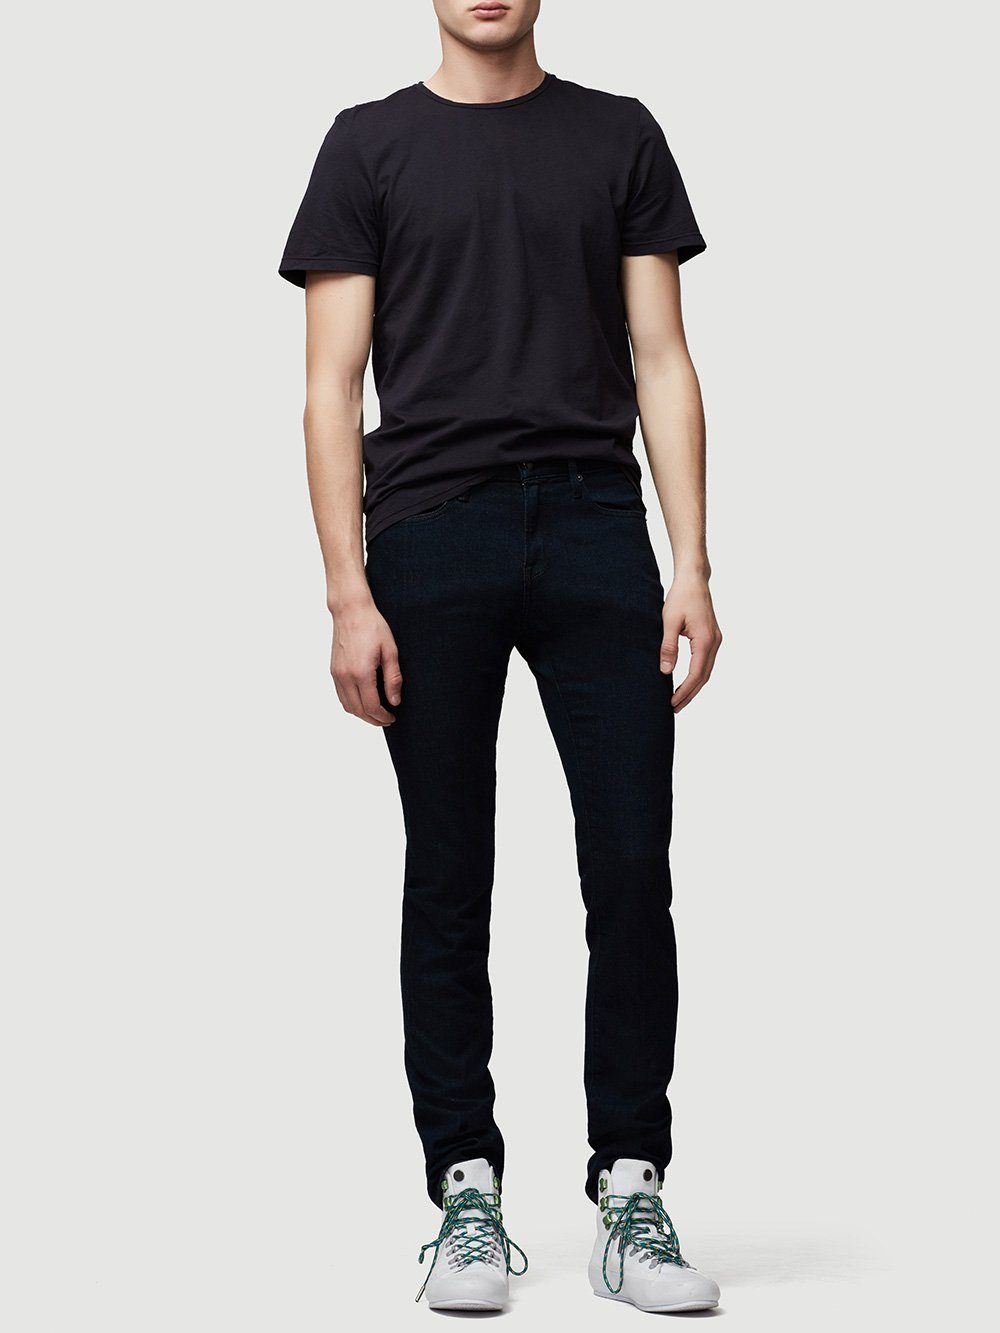 L'Homme Skinny Jean - Edison-FRAME-Over the Rainbow